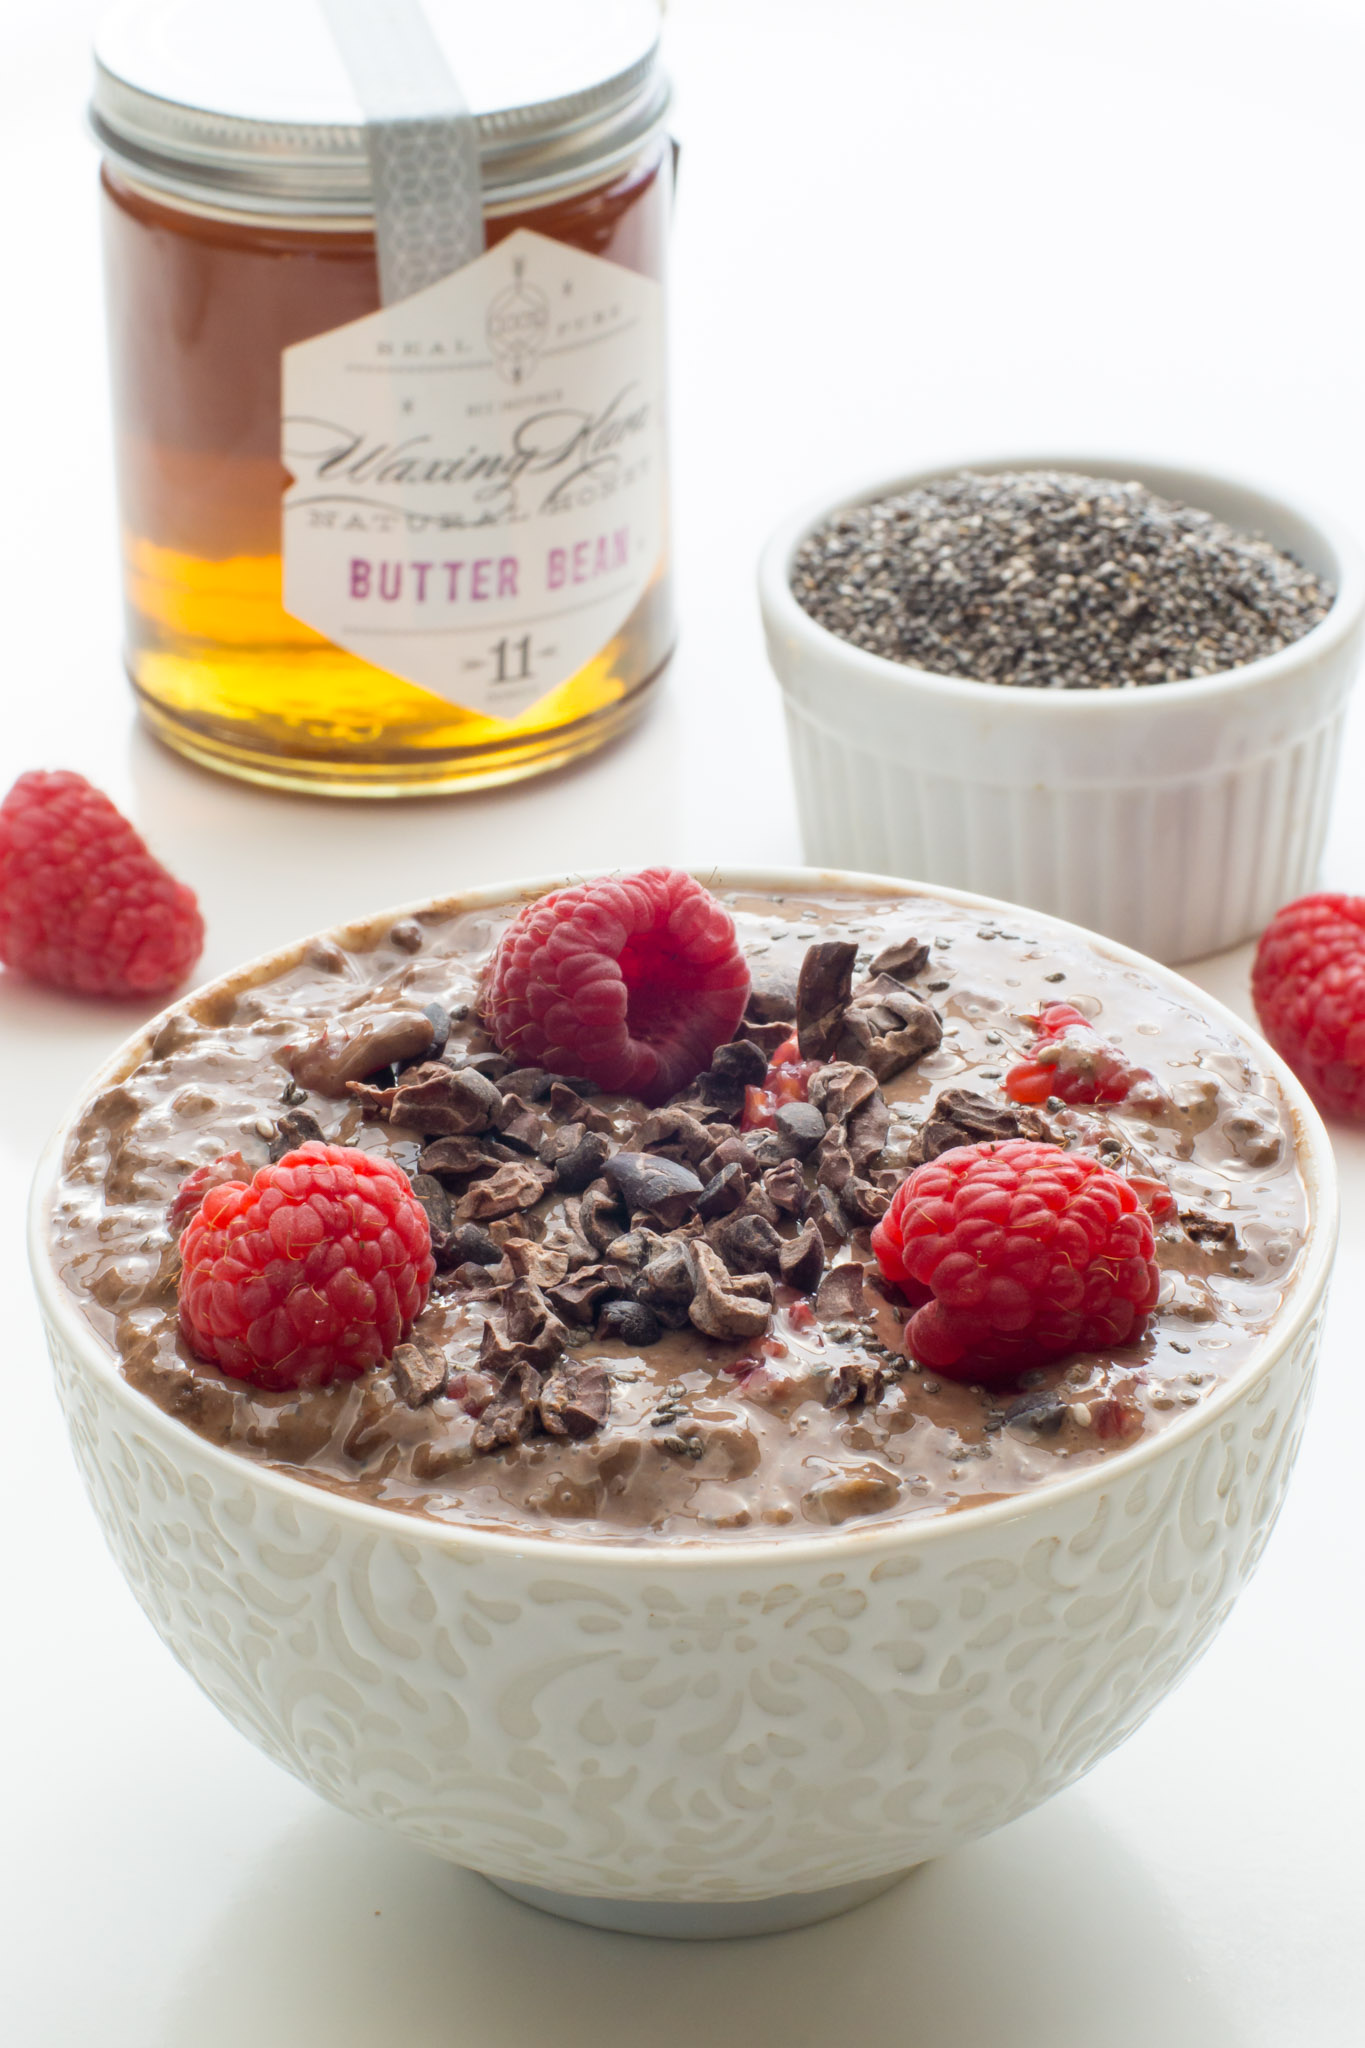 Chocolate Raspberry Chia Pudding in bowl with chia seeds and butter bean honey from waxing kara on the counter